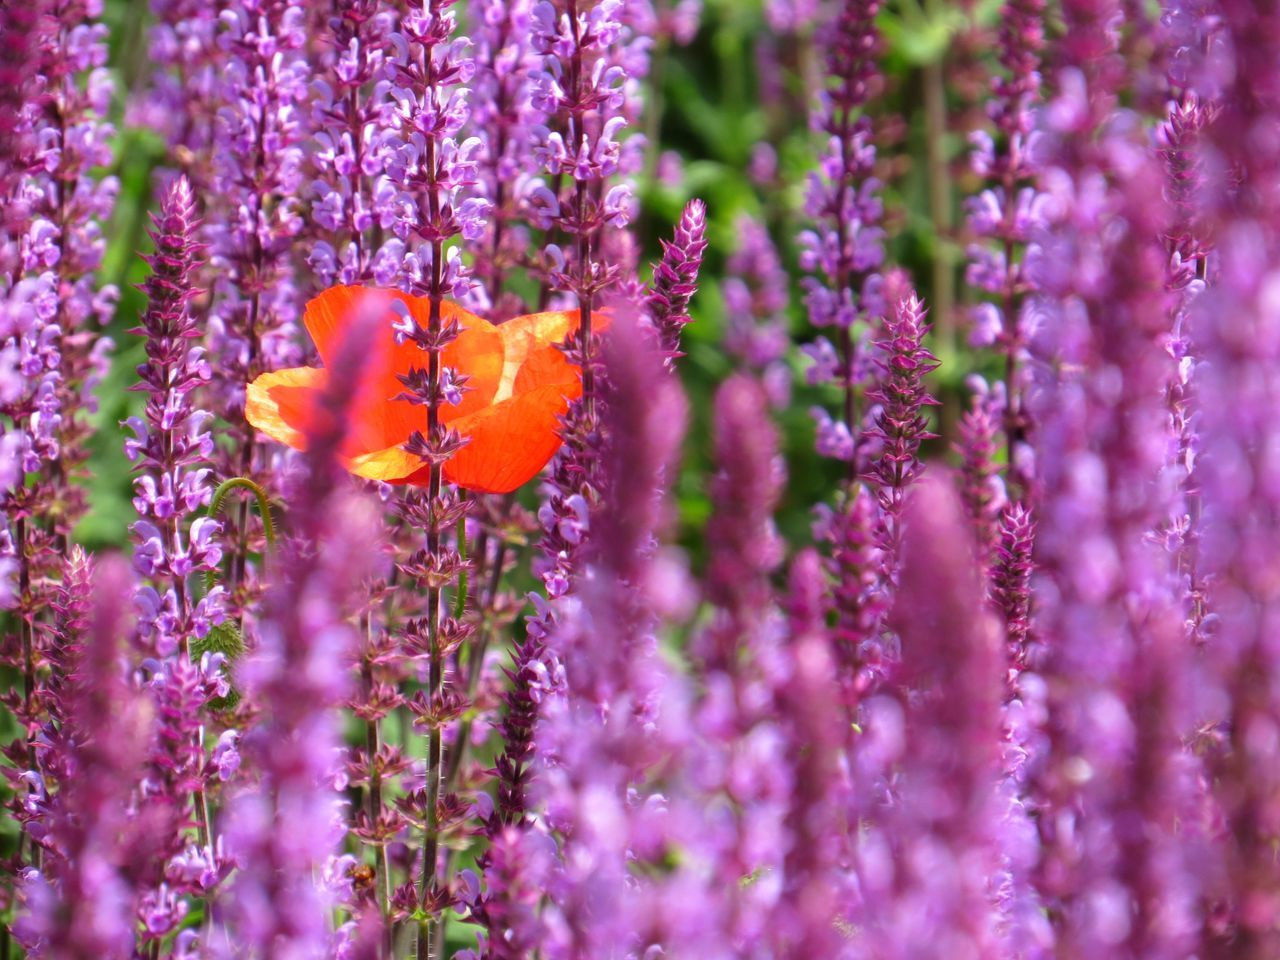 Beauty In Nature Blooming Buzzing Close-up Day Flower Flower Head Fragility Freshness Growth Kew Gardens Lavender Lavender Field Nature No People Outdoors Petal Plant Pollination Poppy Flowers Sunny Day Sunny Day 🌞 Vivid Colours